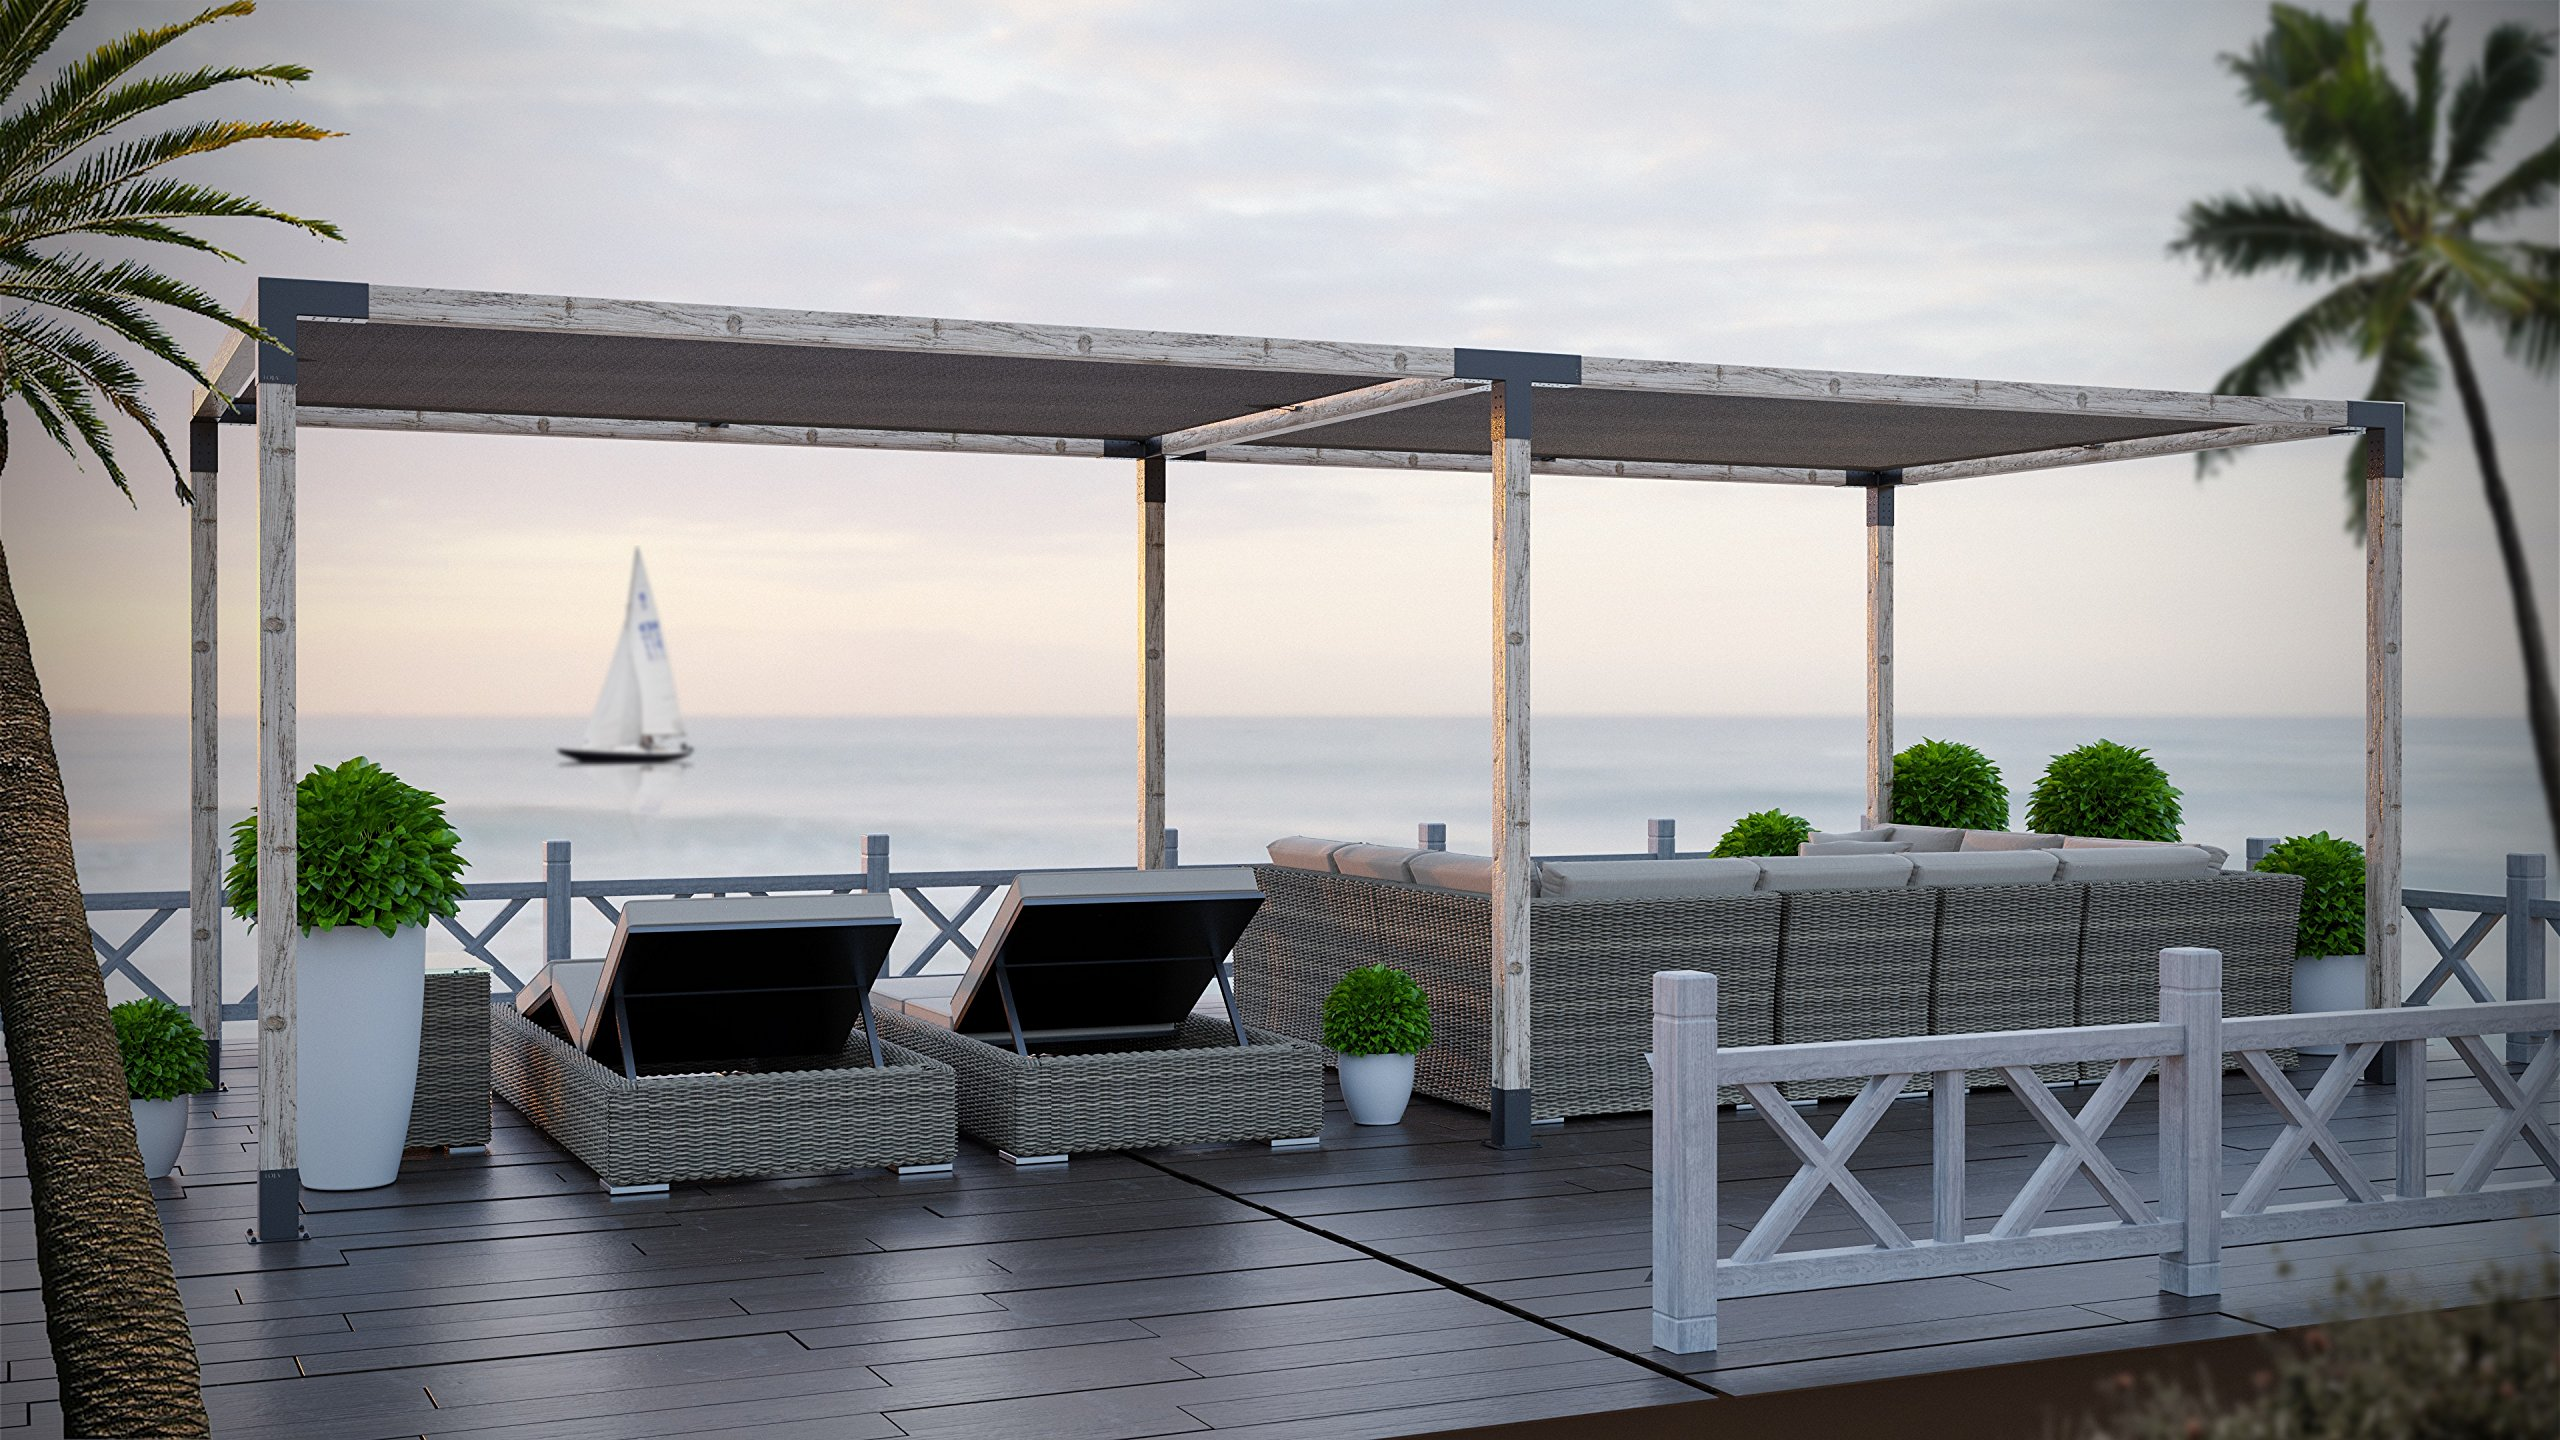 TOJA Grid - Double Pergola with Shade Sail (12x16 - Includes 8x12+8x12 Shade Sails)